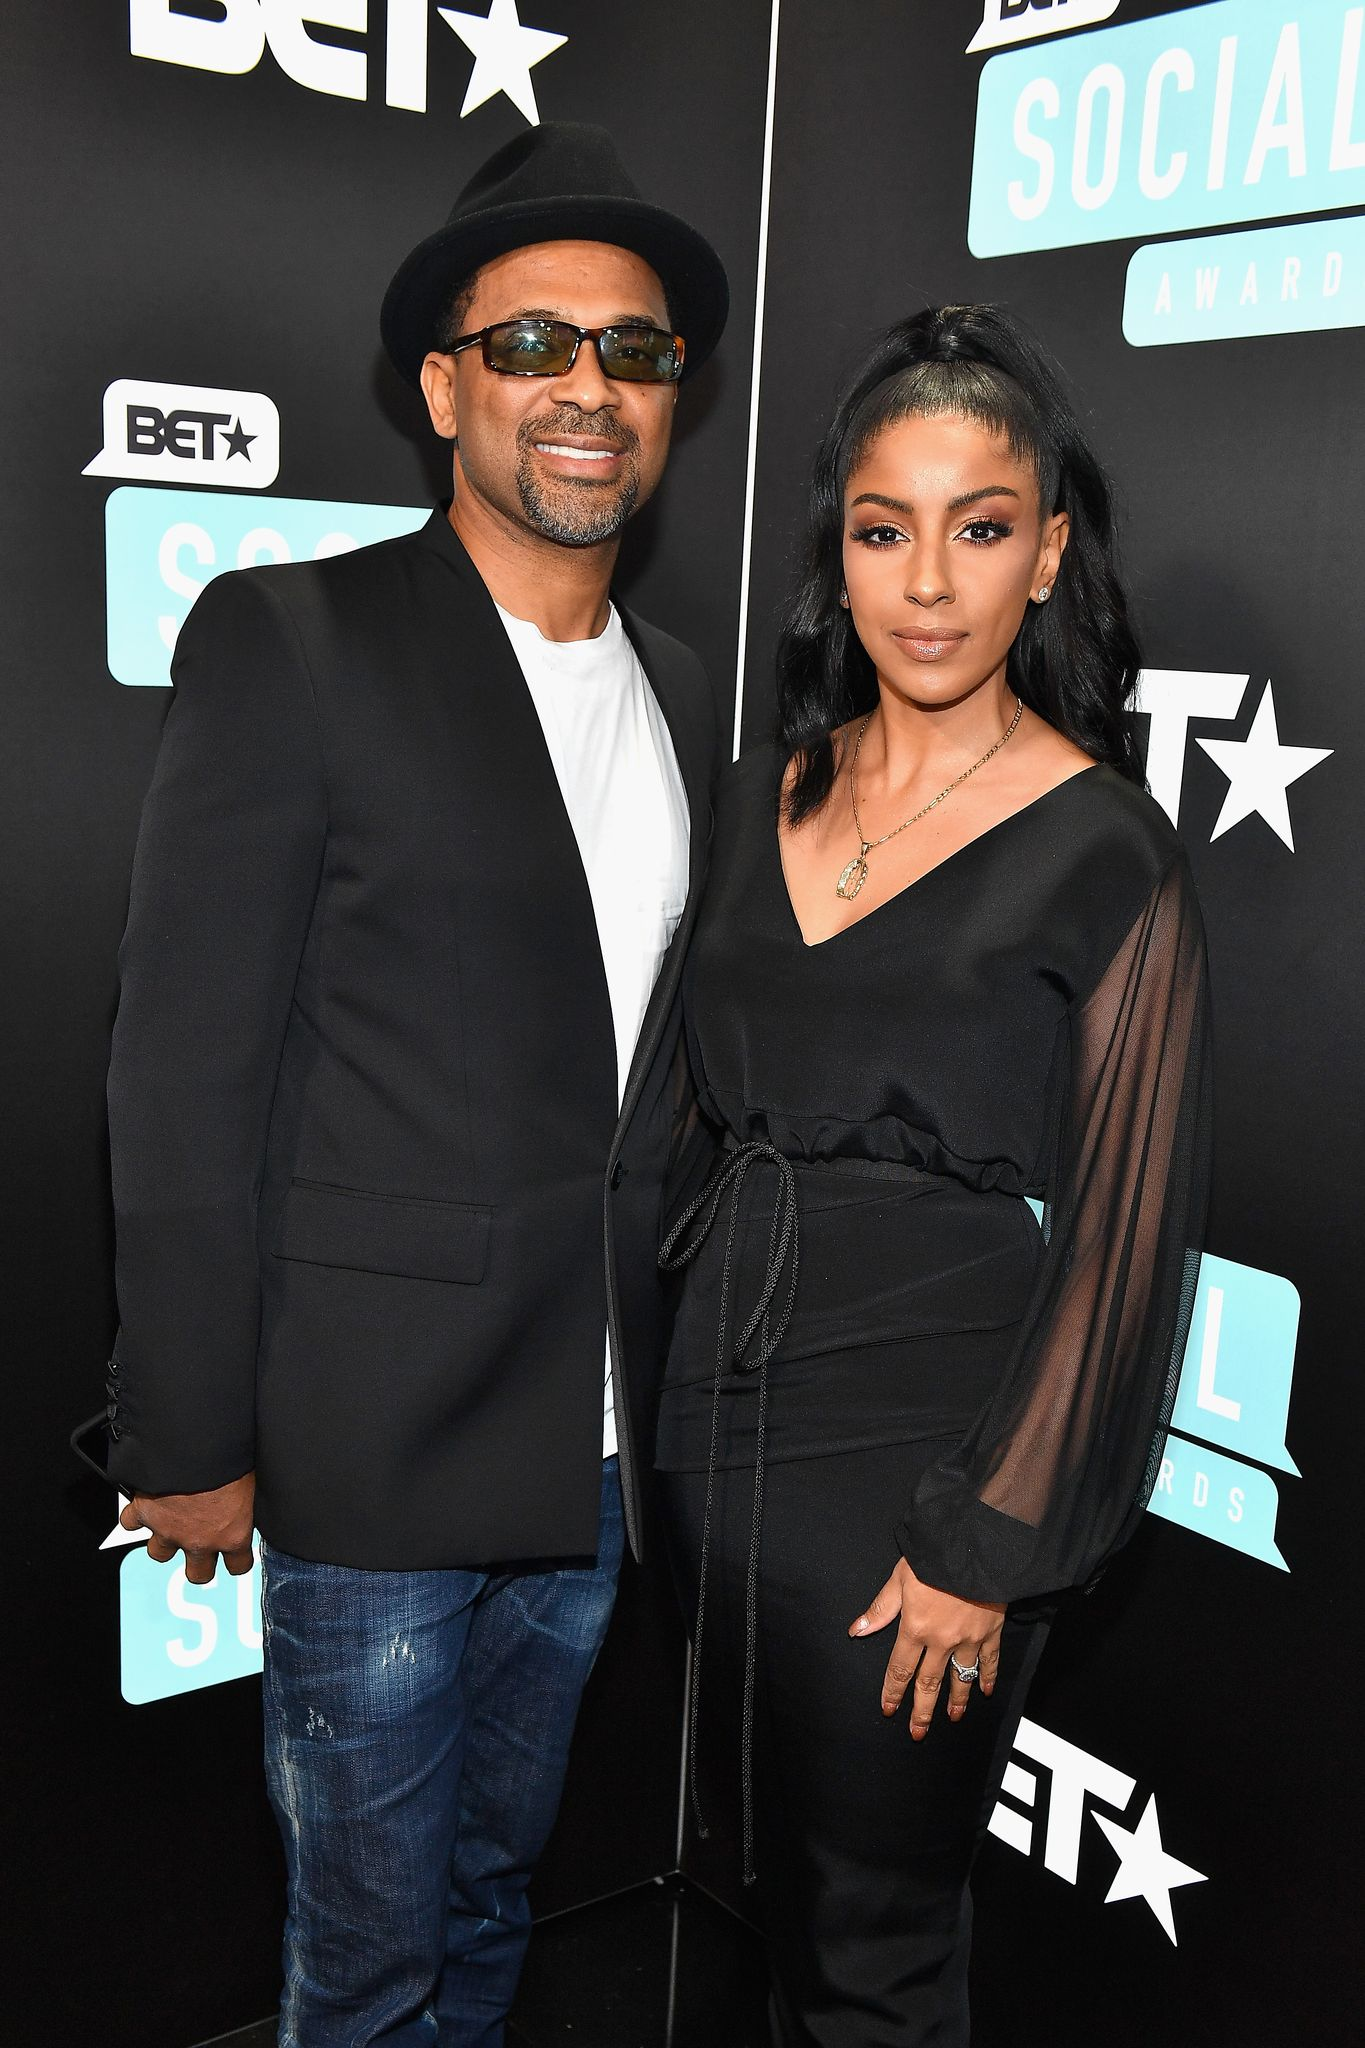 Mike Epps and Kyra Robinson at the BET Social Awards at Tyler Perry Studio on March 3, 2019 in Atlanta, Georgia | Photo: Getty Images